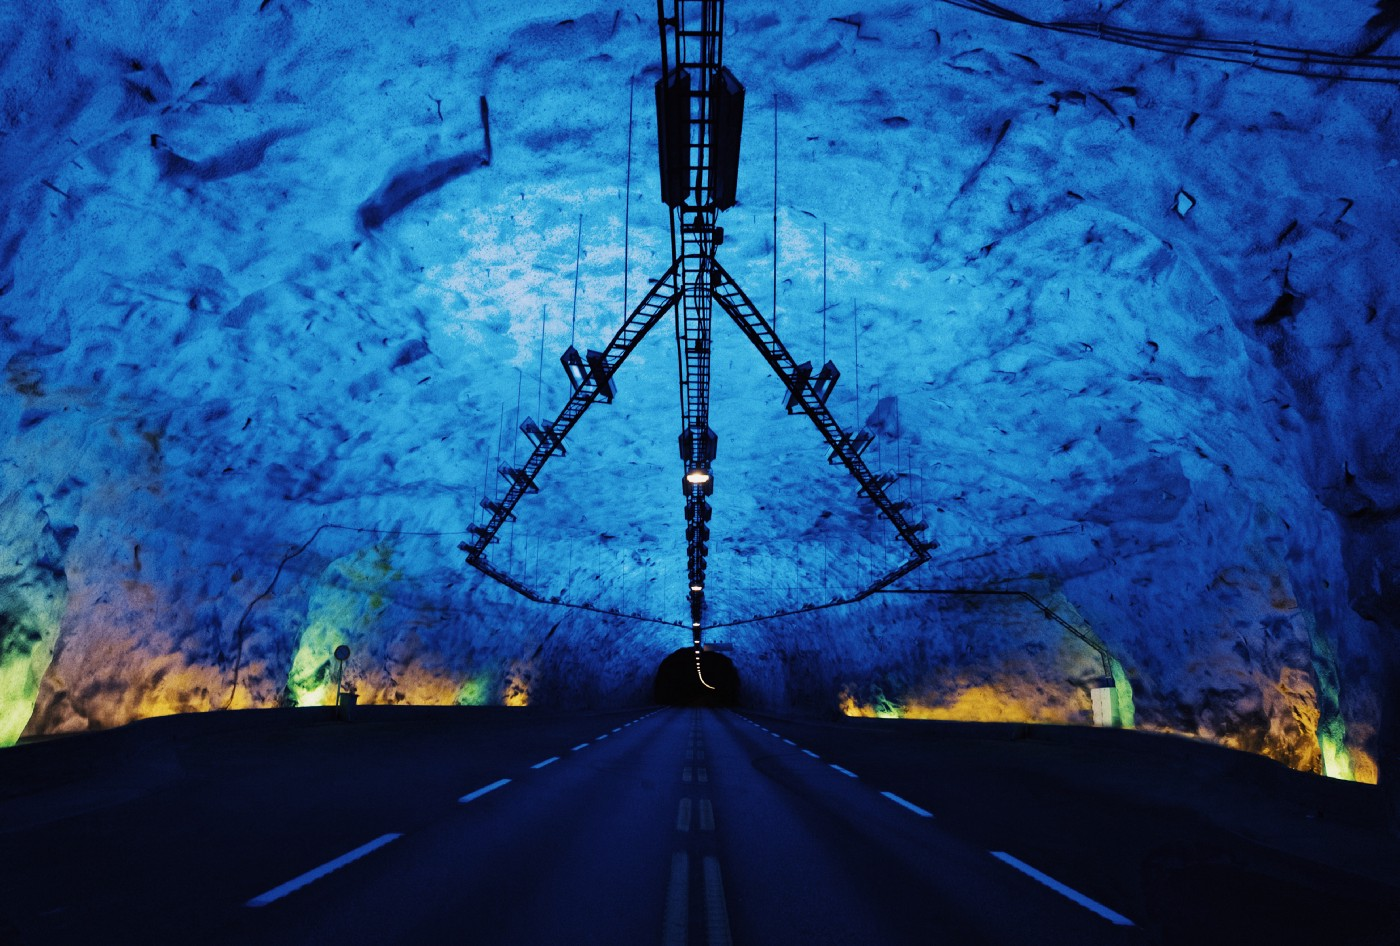 A blue tunnel showing burn out of careers.